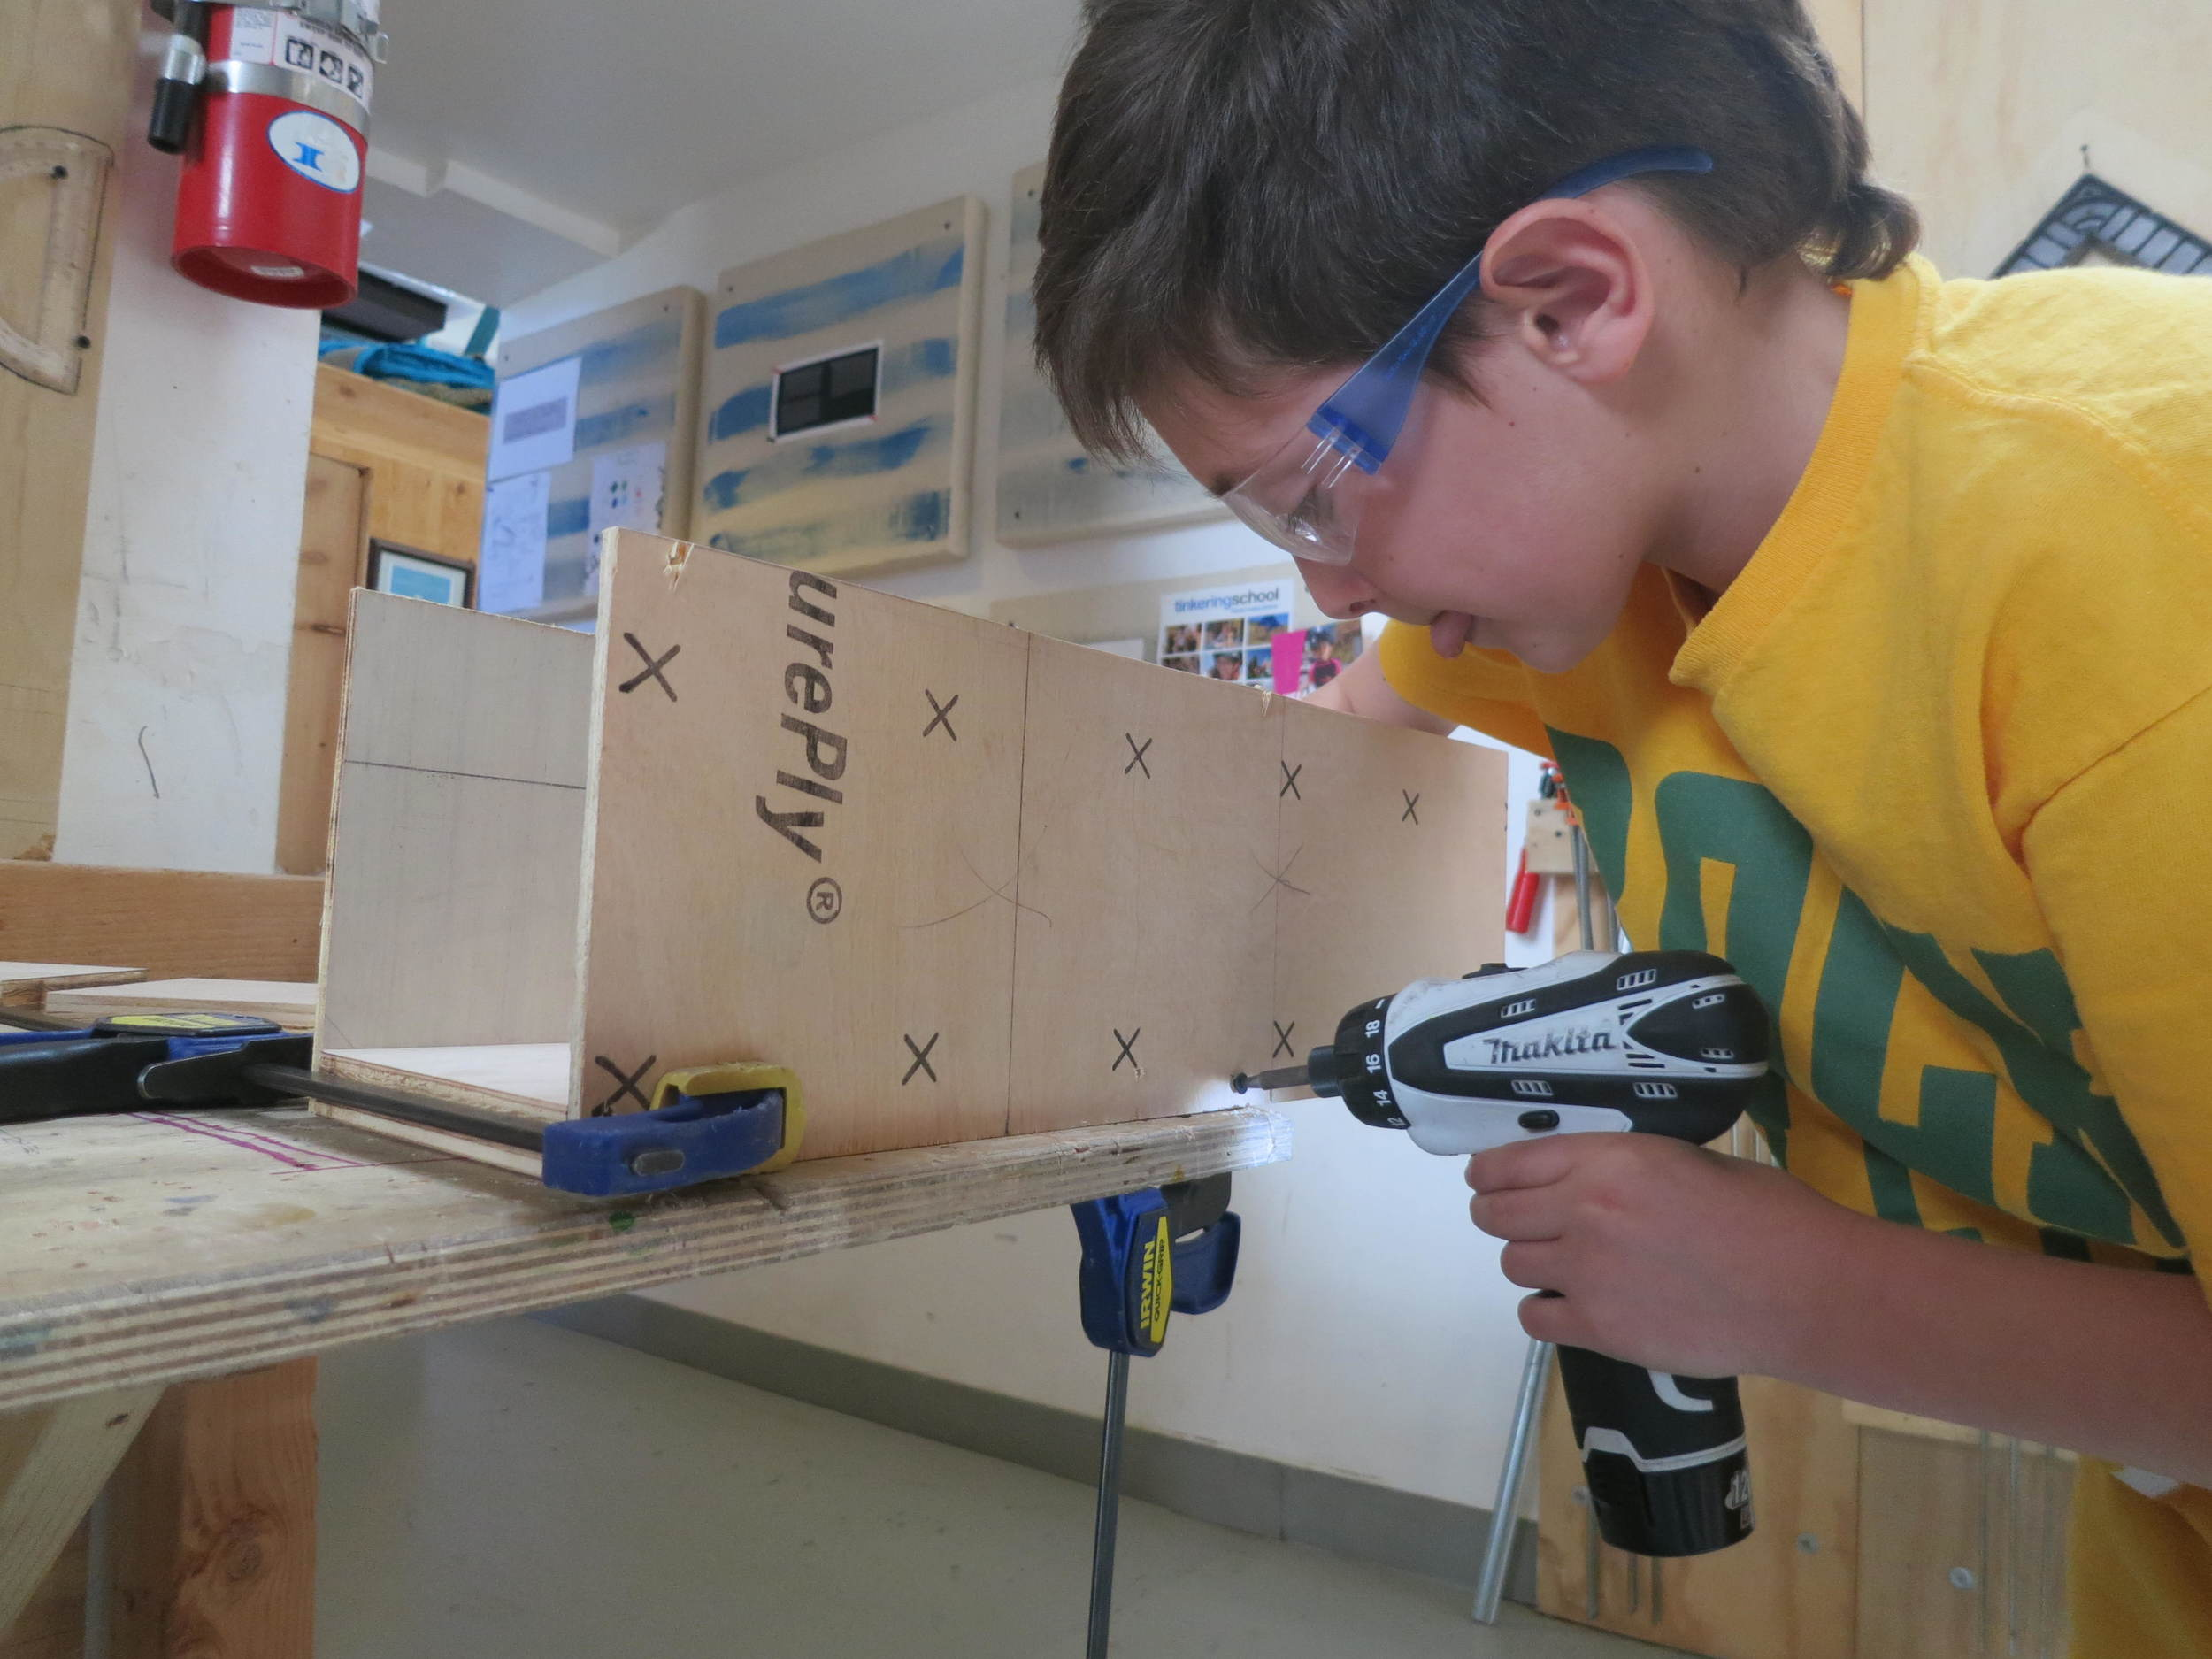 Nico works on completing the container to house the coil dispenser